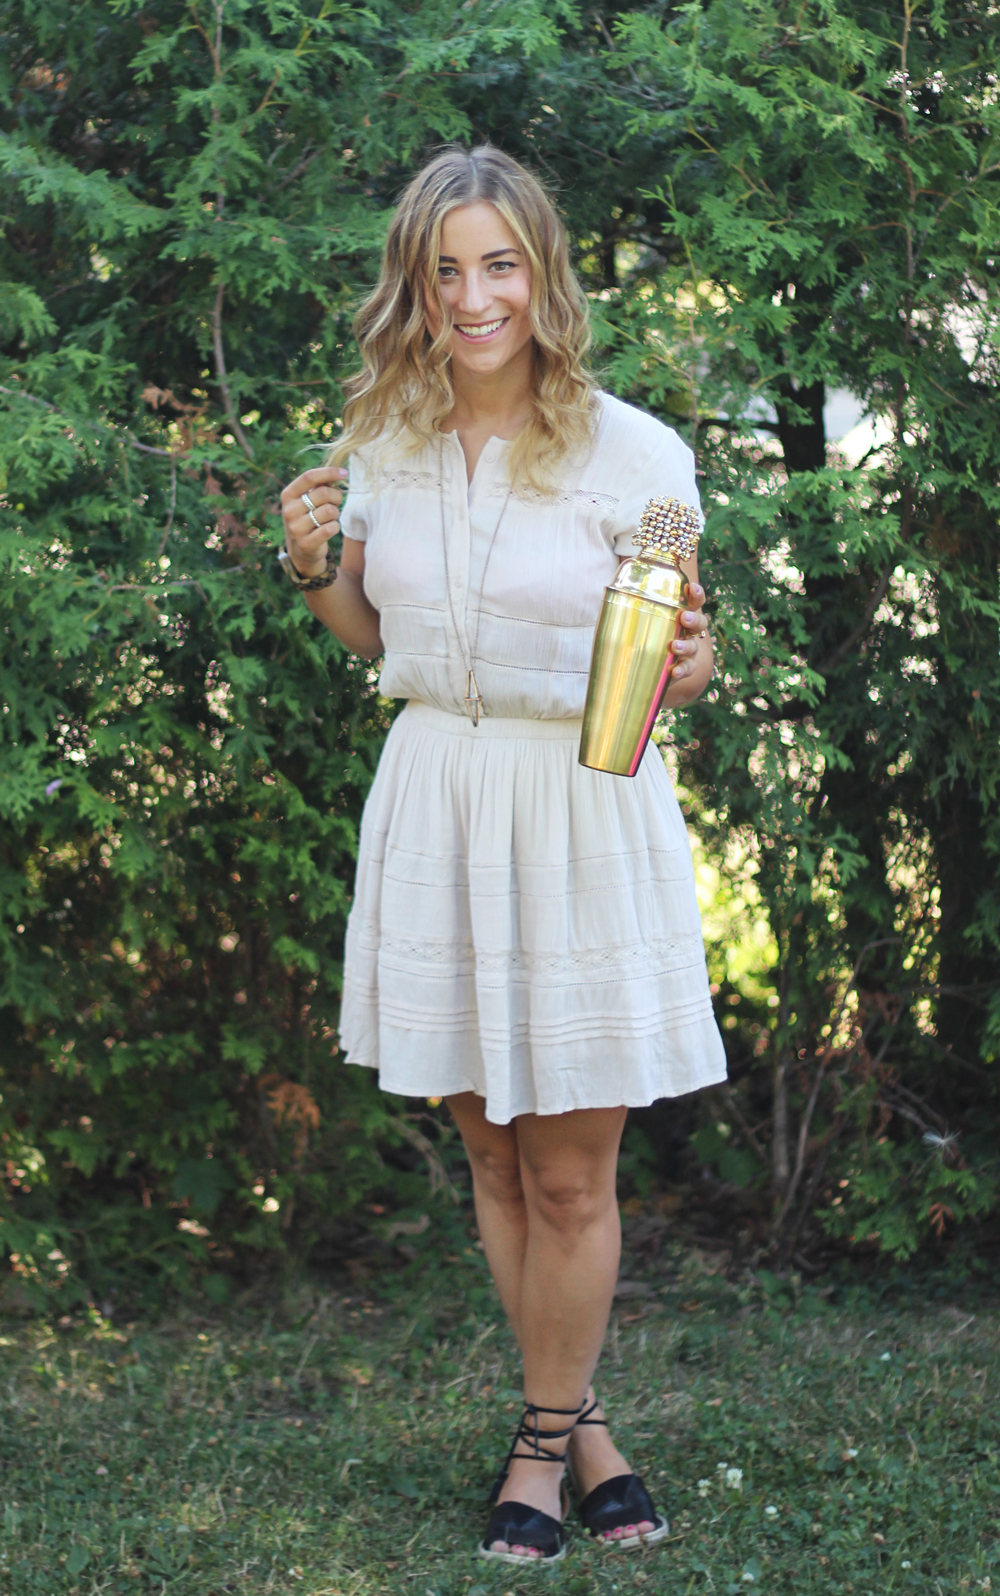 Tips for throwing a summer party from Toronto Fashion Bloggers